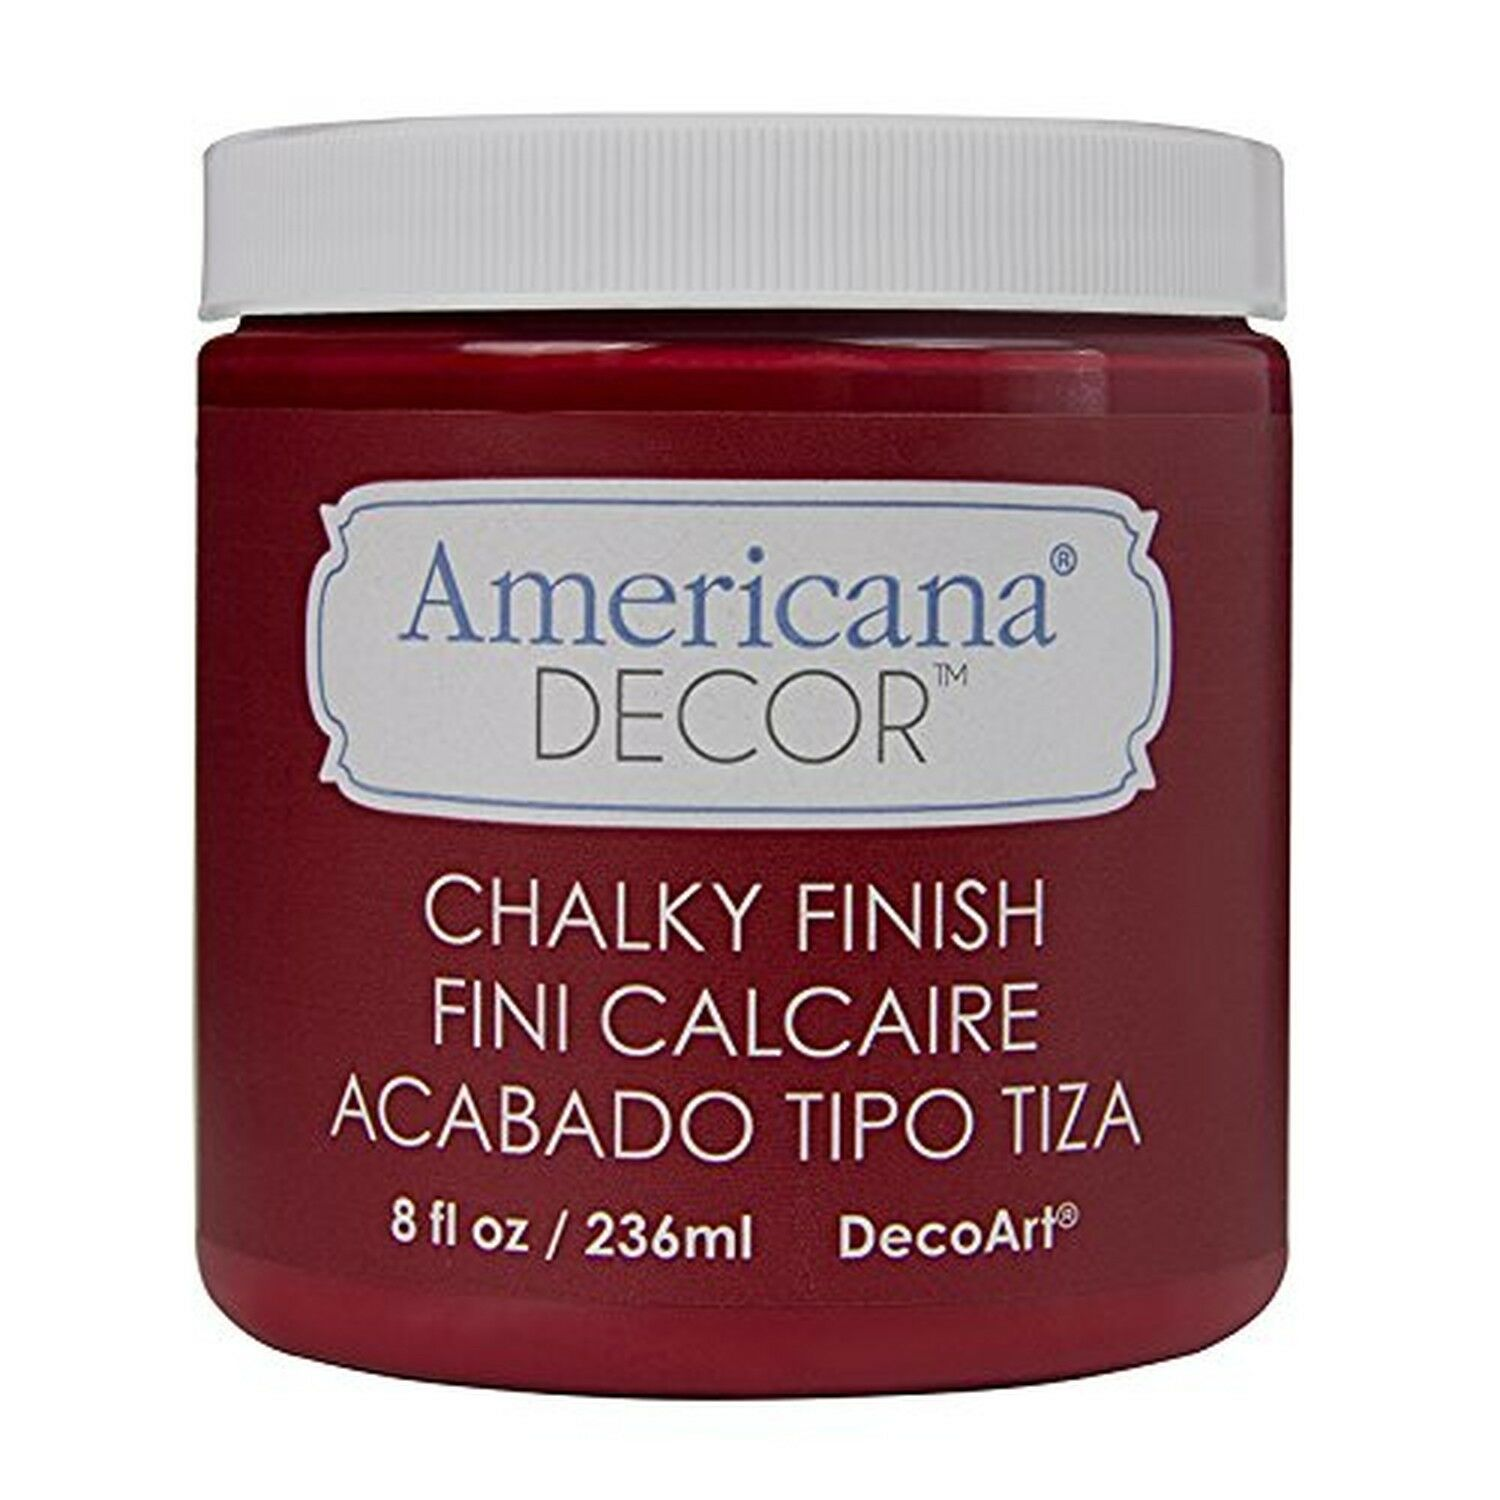 DecoArt Americana Decor Chalky Finish Paint - Rouge